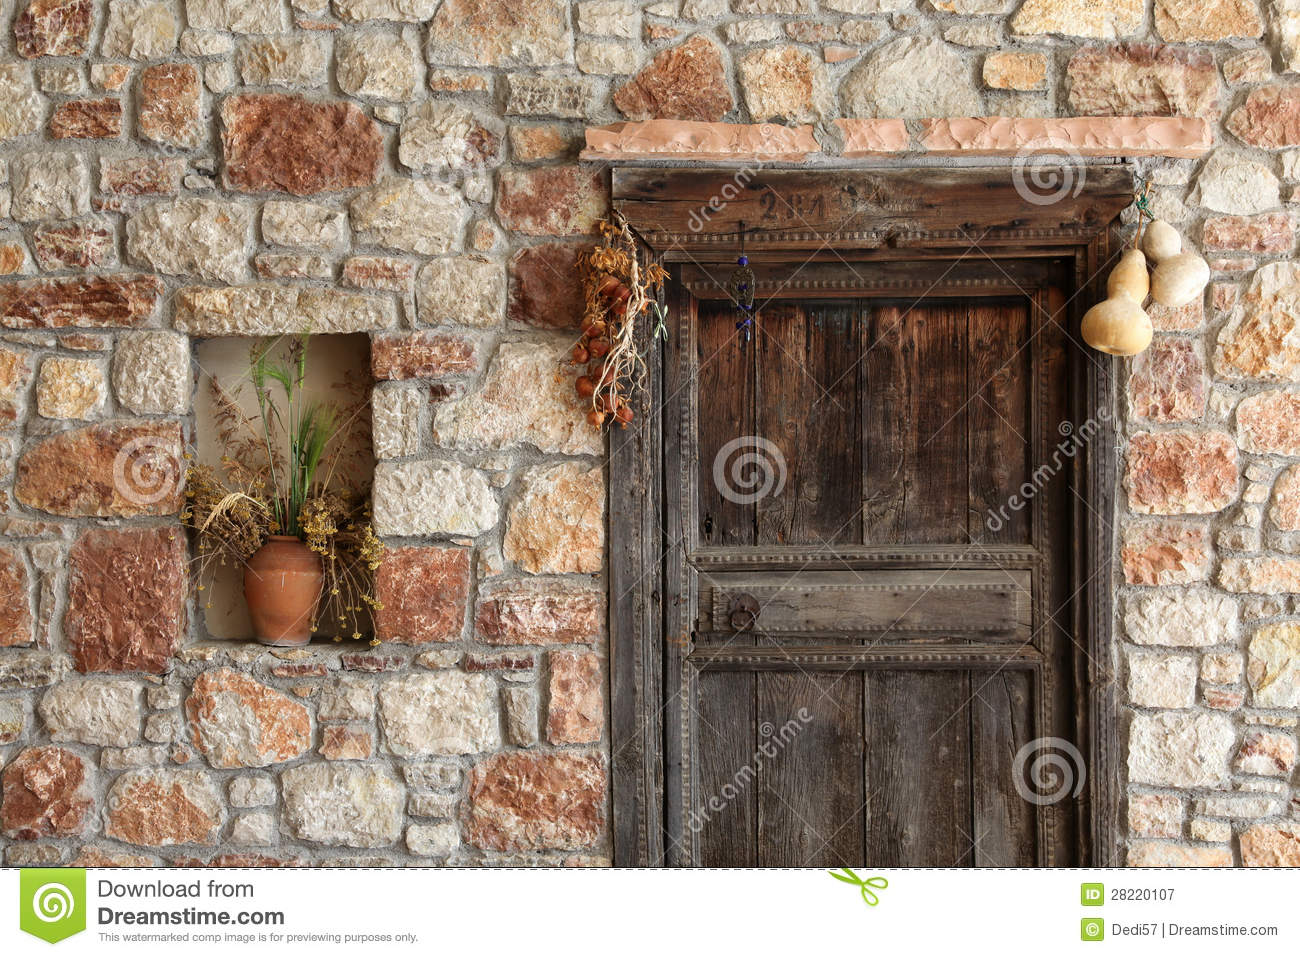 ... Free Stock Photography: Natural stone facade and old wooden door